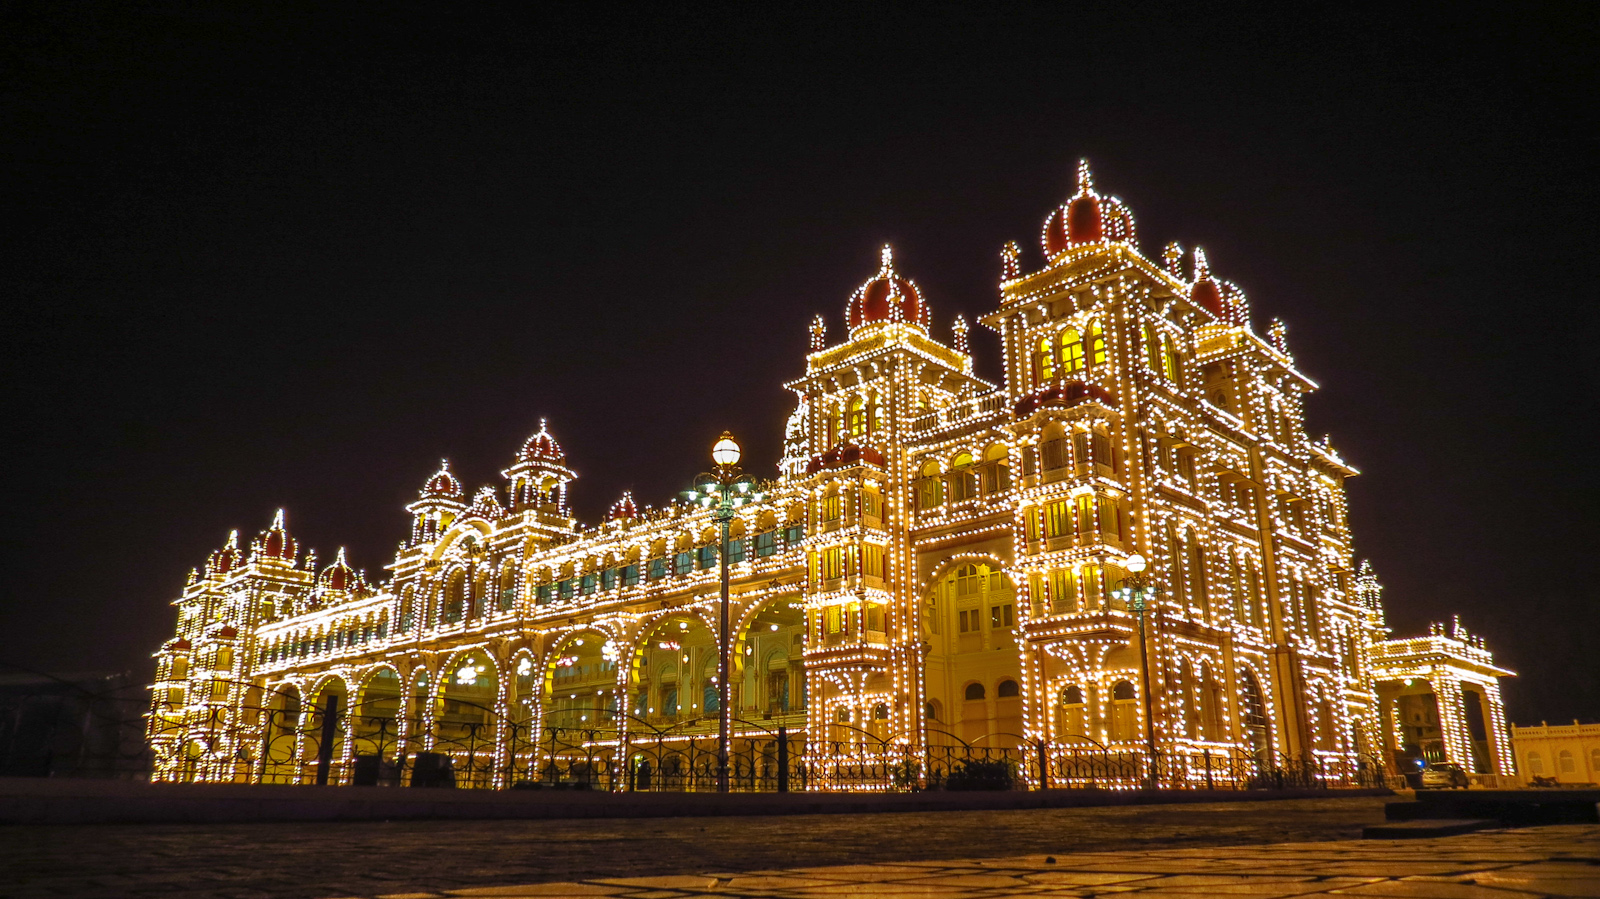 mysore-palace-india-lit-with-bulbs